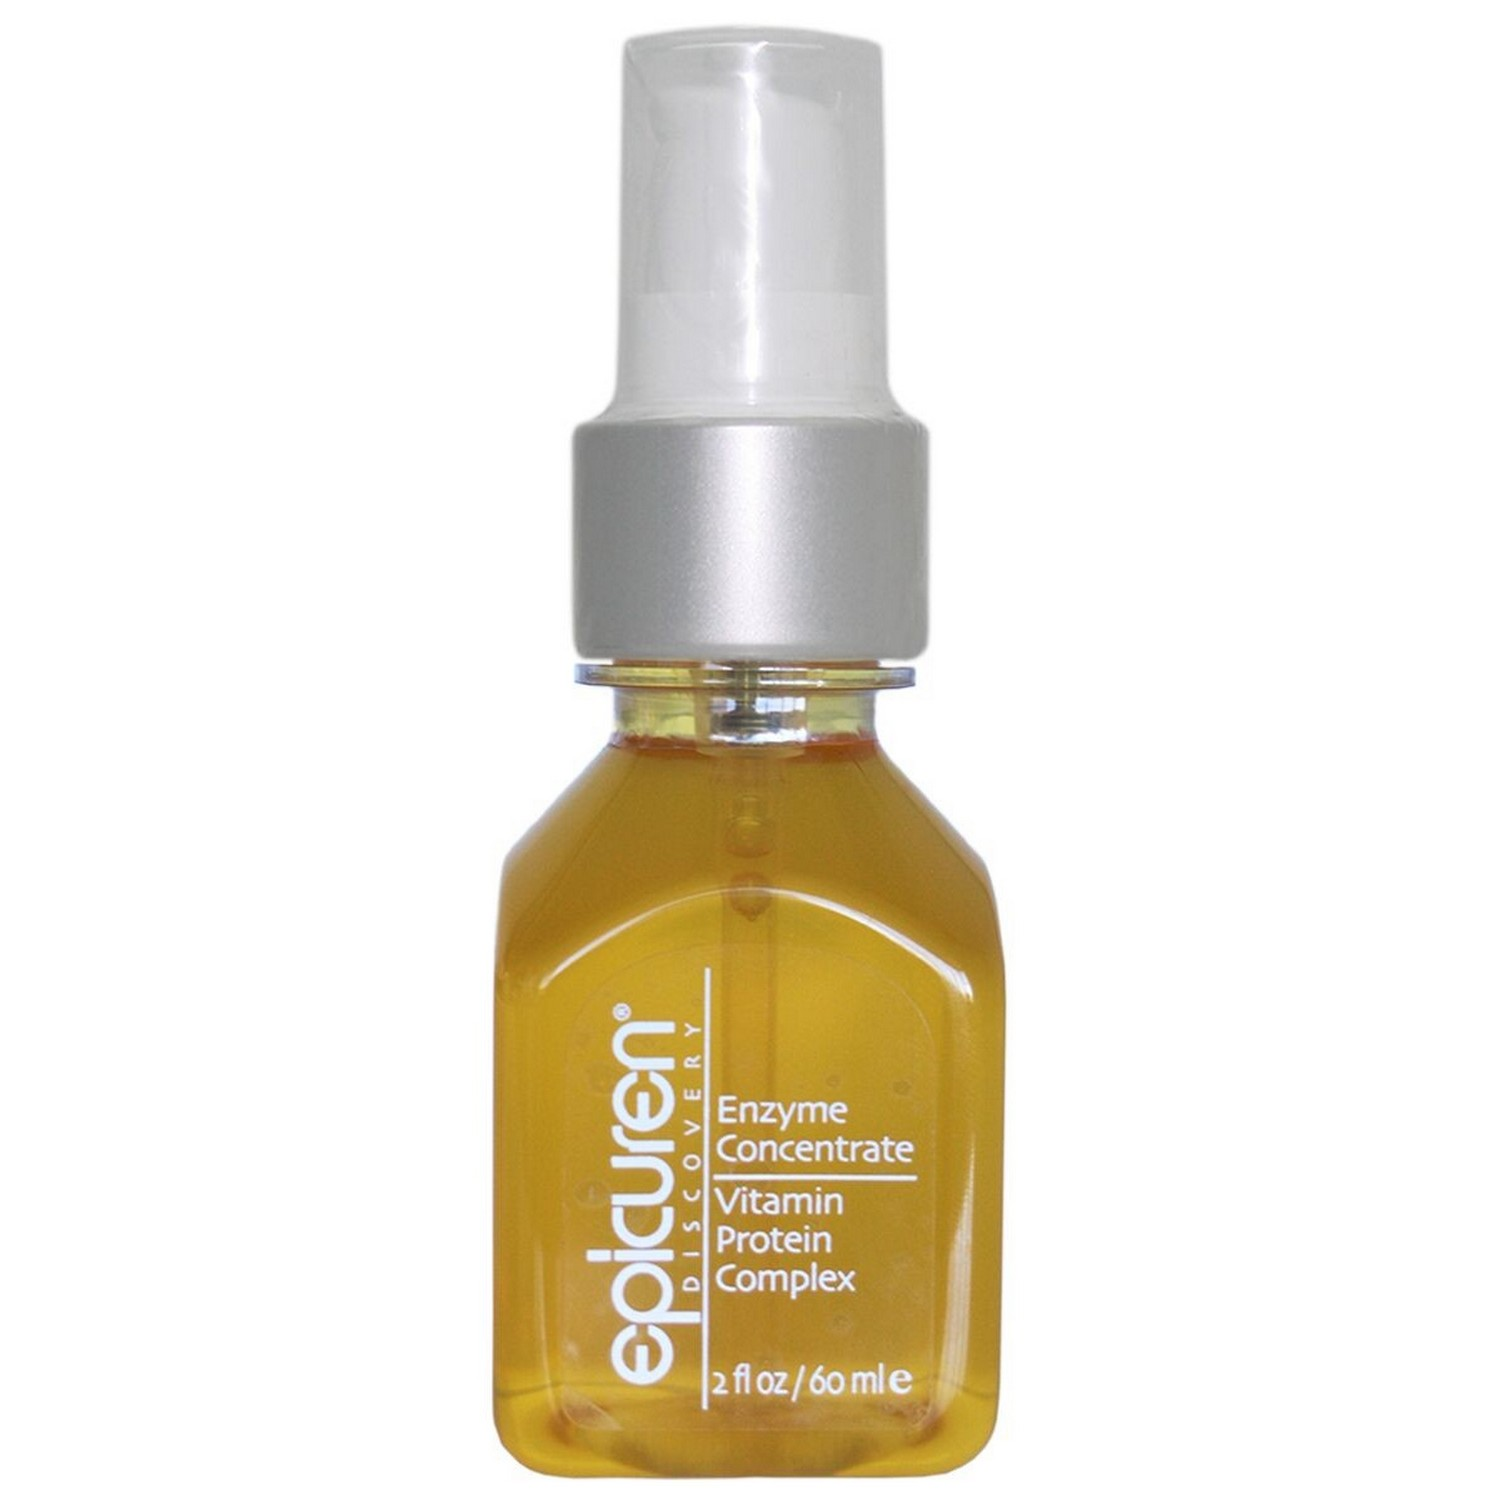 epicuren Discovery Enzyme Concentrate Vitamin Protein Complex (1.0 fl oz / 30 ml)